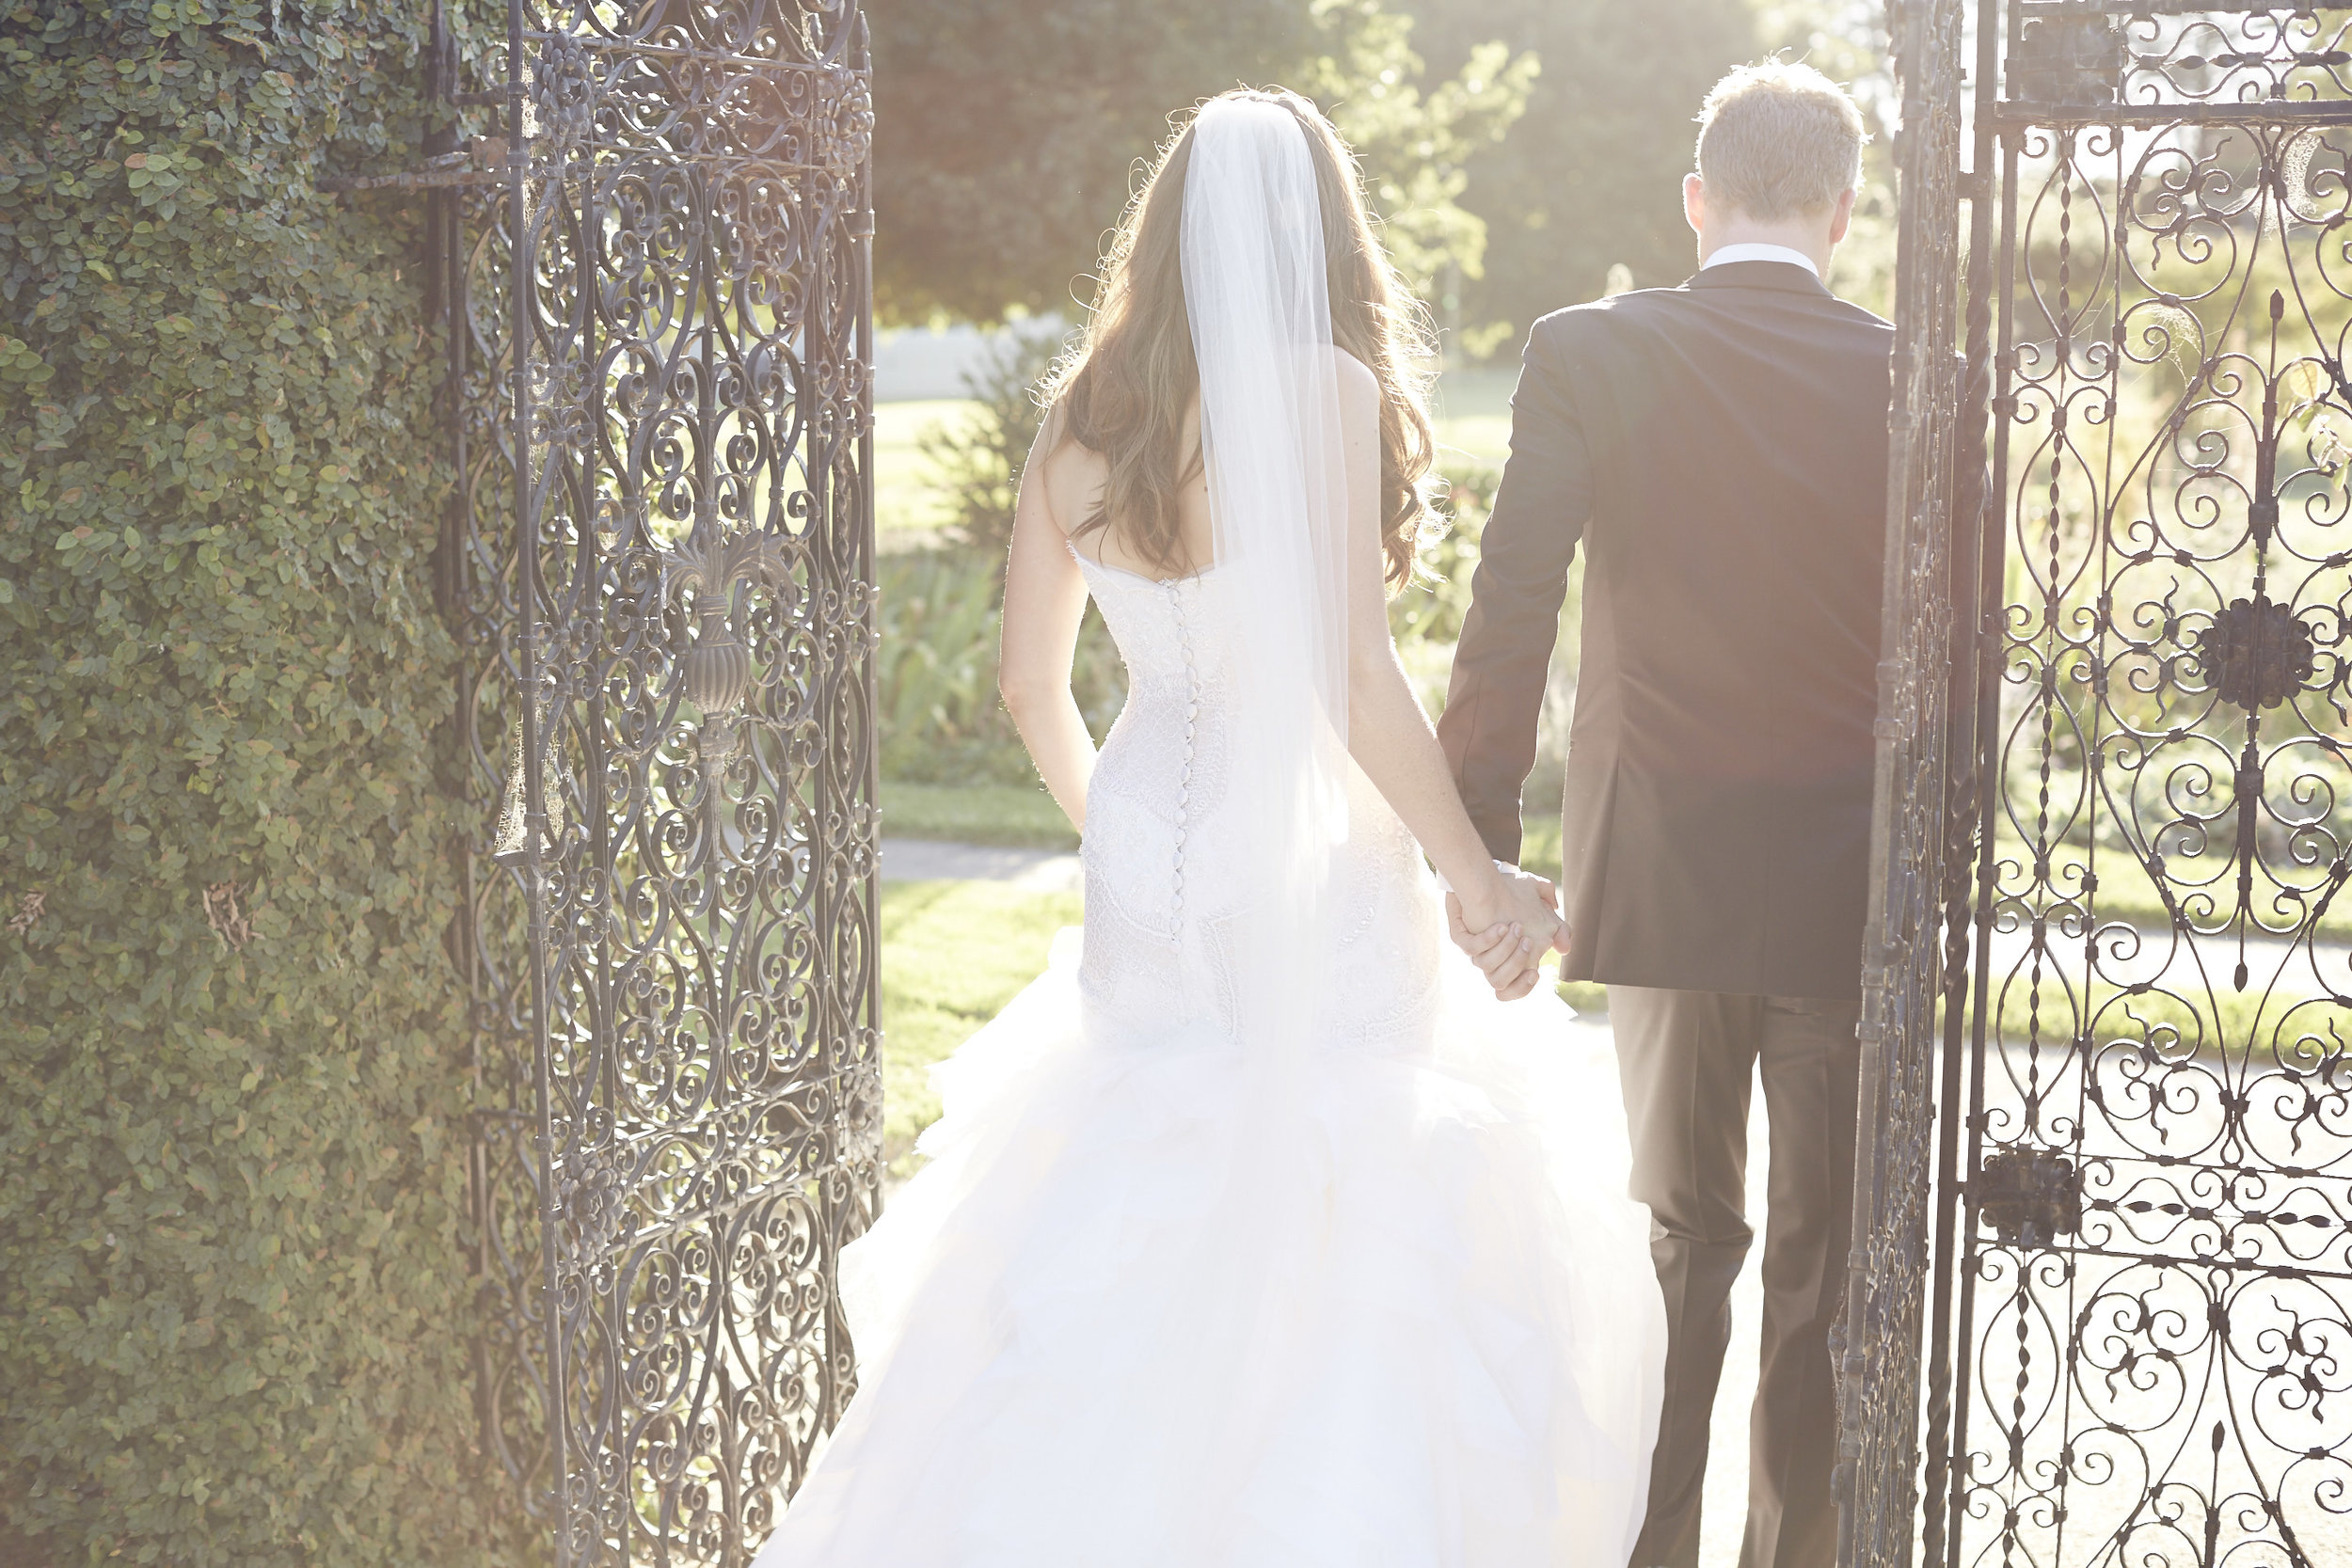 Wedding Dress by Crocé & Colocimo, ceremony held at Coombe Estate Yarra Valley